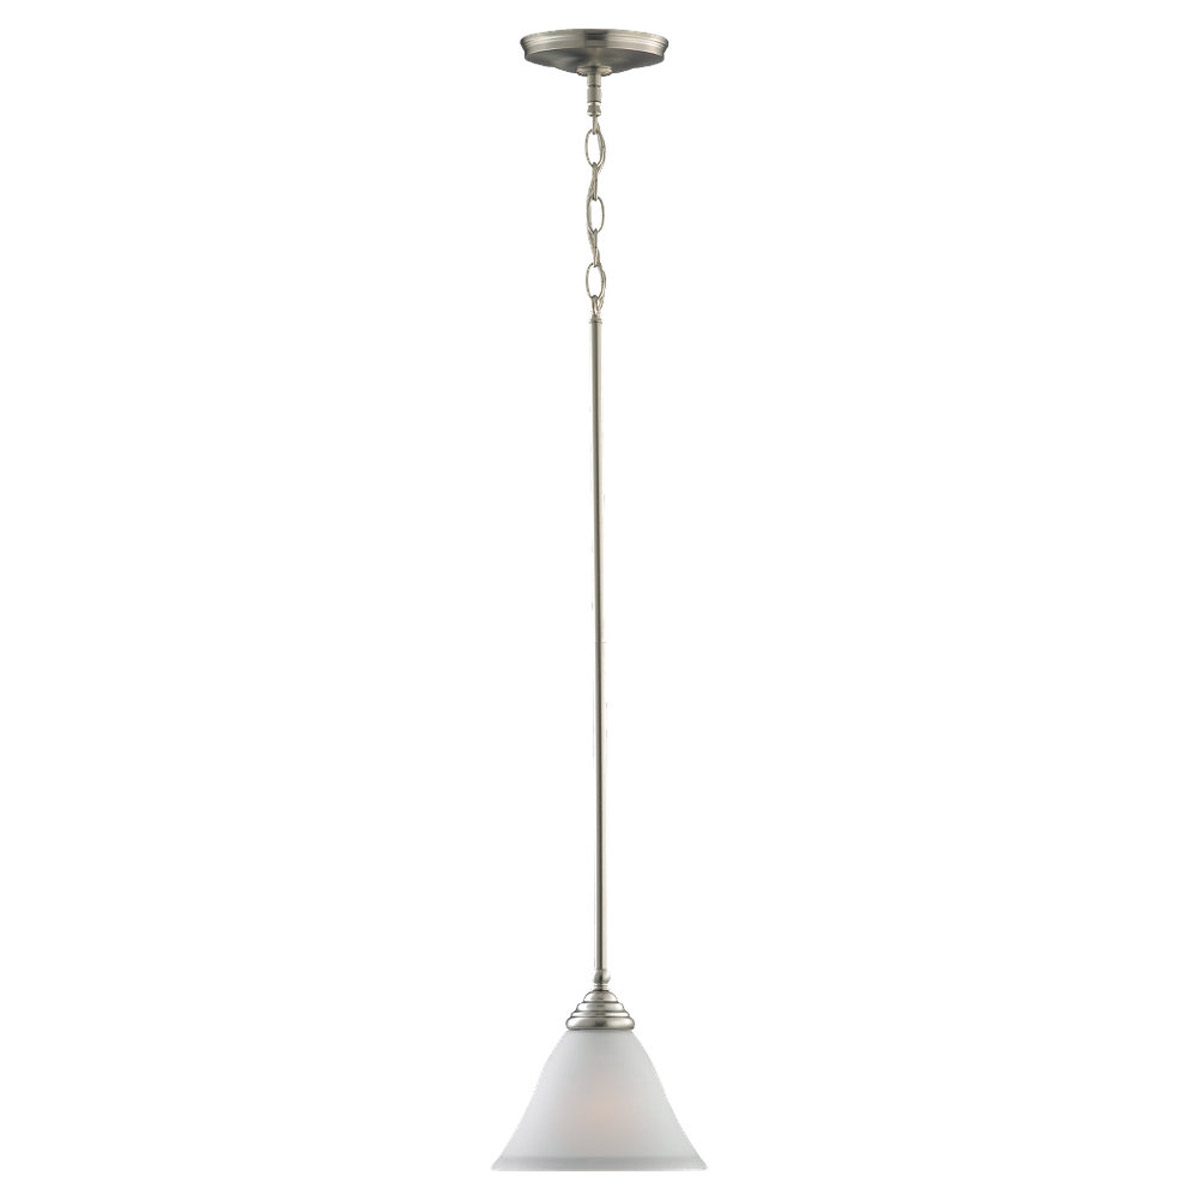 Sea Gull Lighting Albany 1 Light Mini Pendant in Brushed Nickel 61575-962